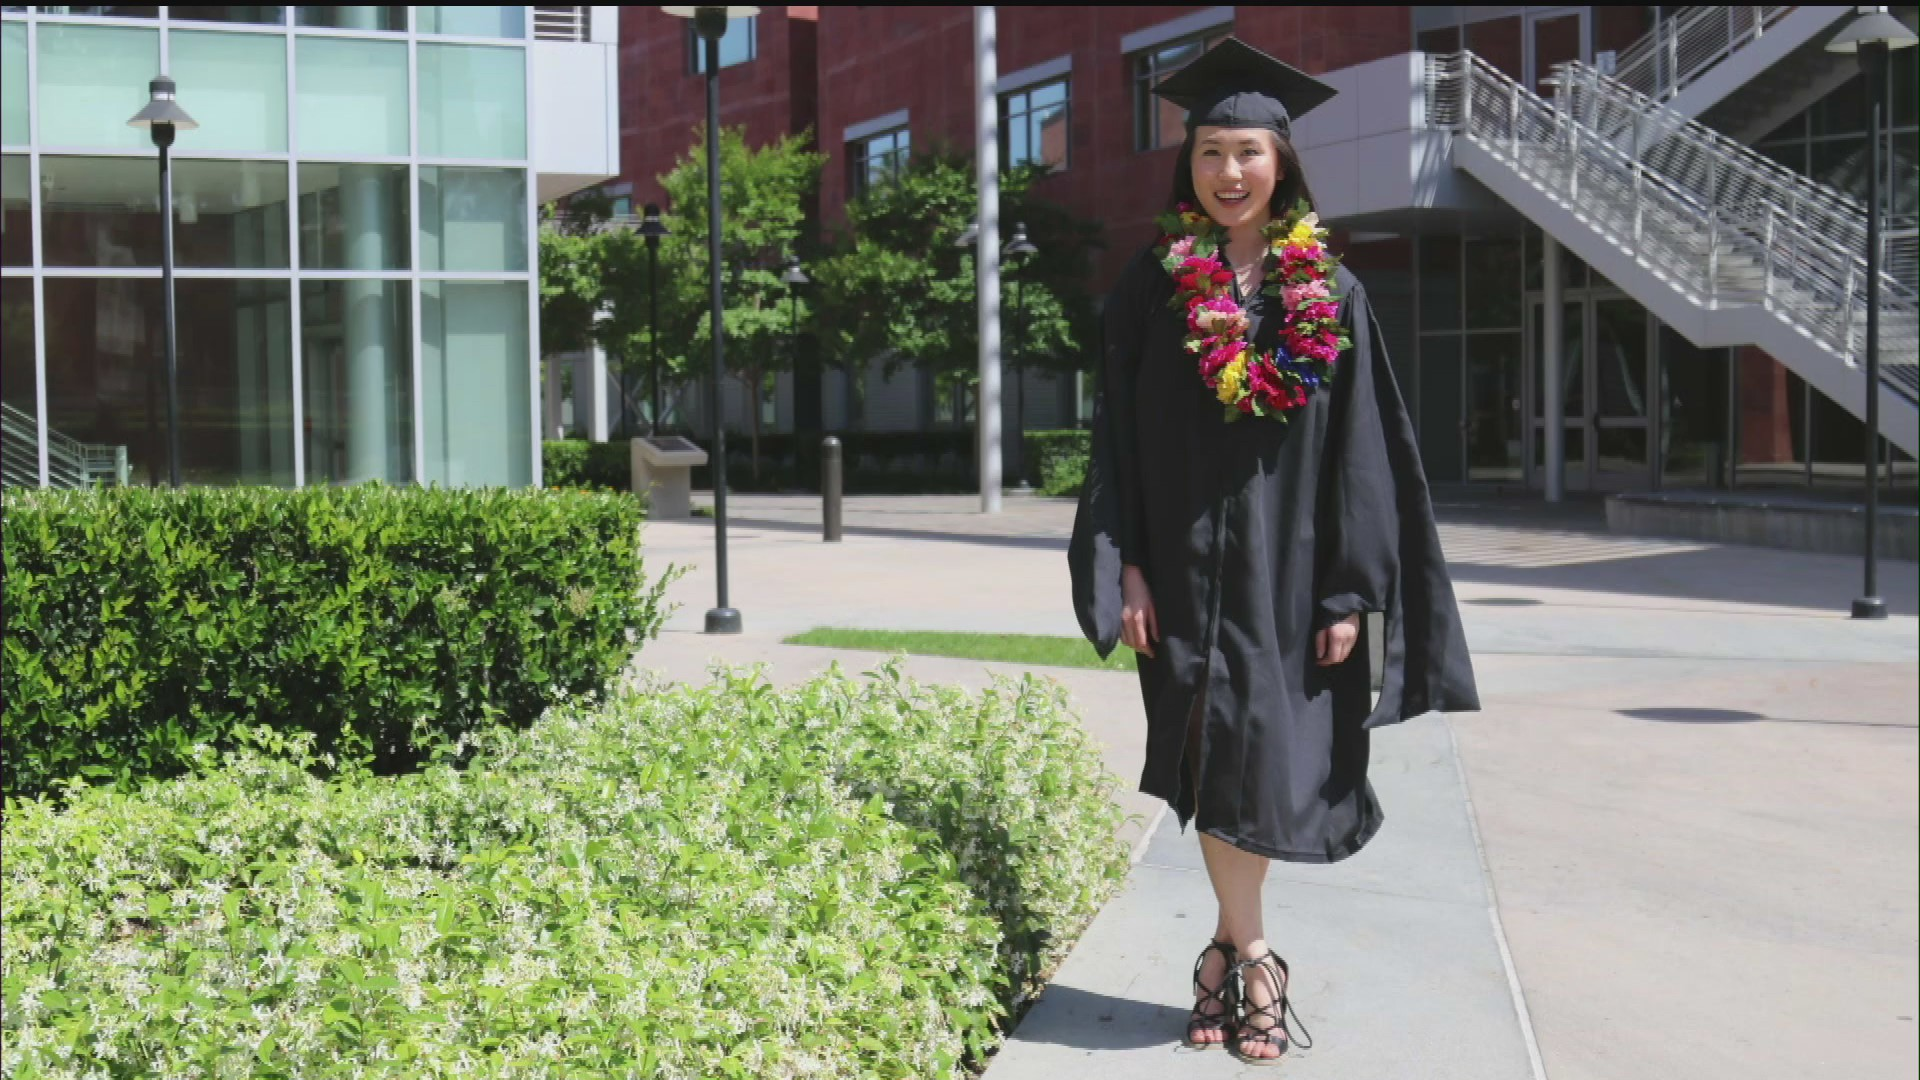 Alexis Kam, 17, of Studio City celebrates her graduation from California State University, Los Angeles in a photo obtained by KTLA.